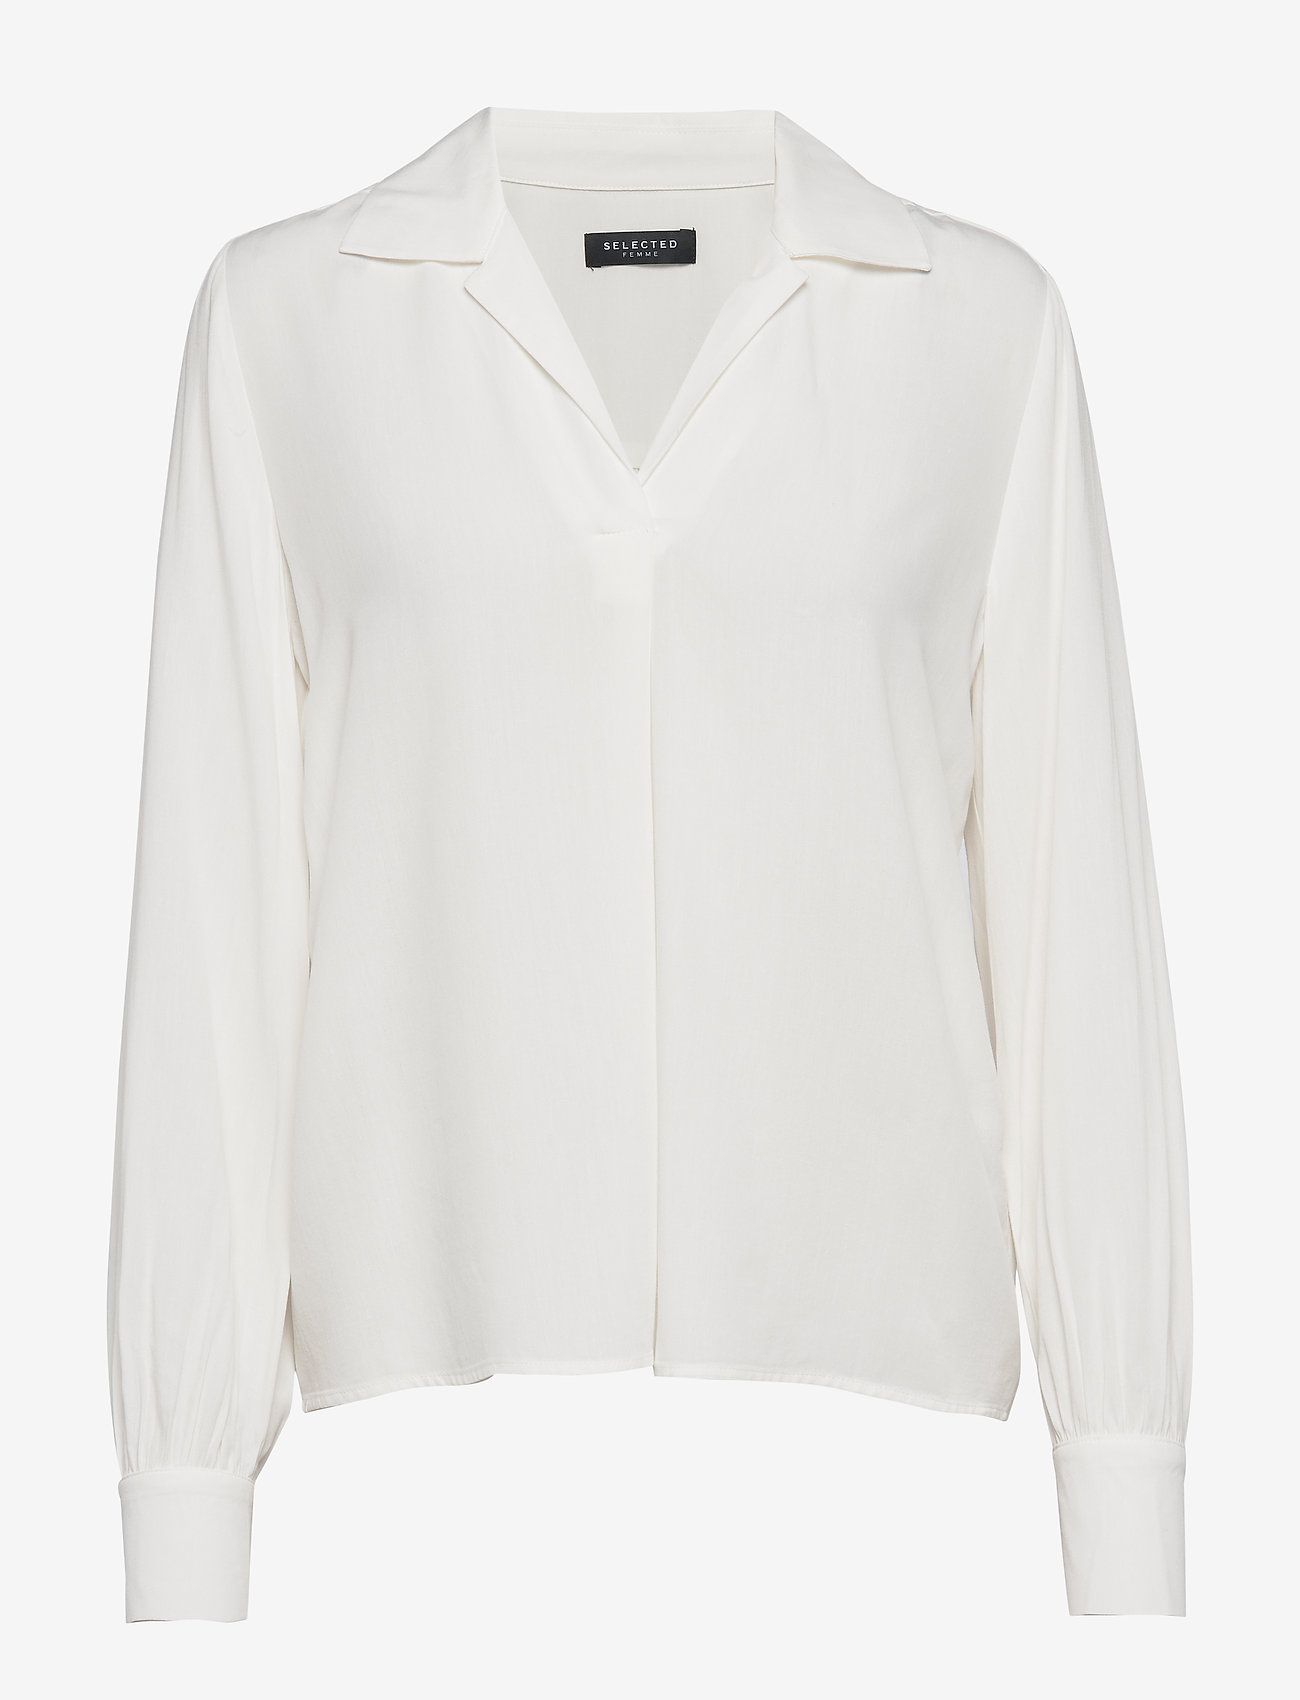 Selected Femme - SLFDAISY LS TOP NOOS - long sleeved blouses - creme - 0